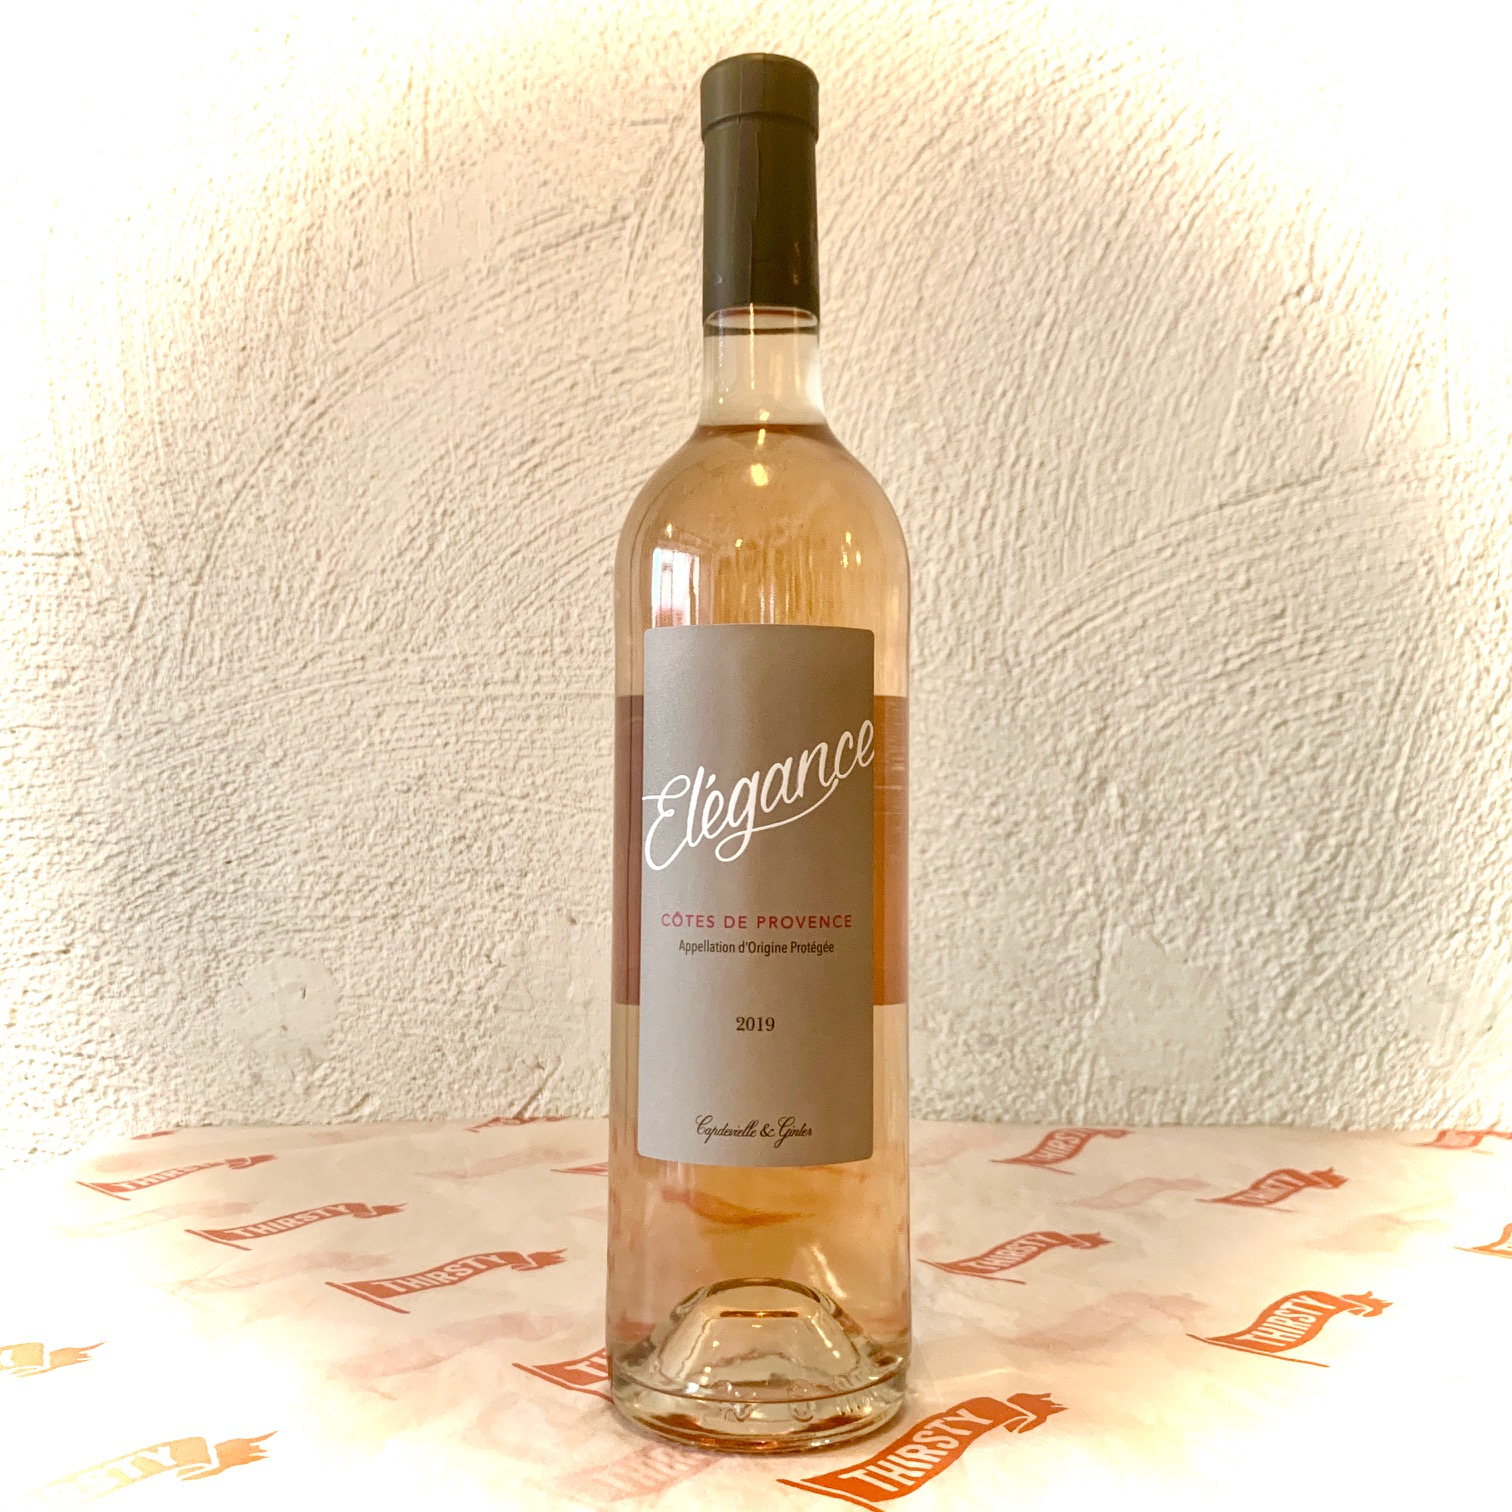 Capdevielle Elegance Provence Rose